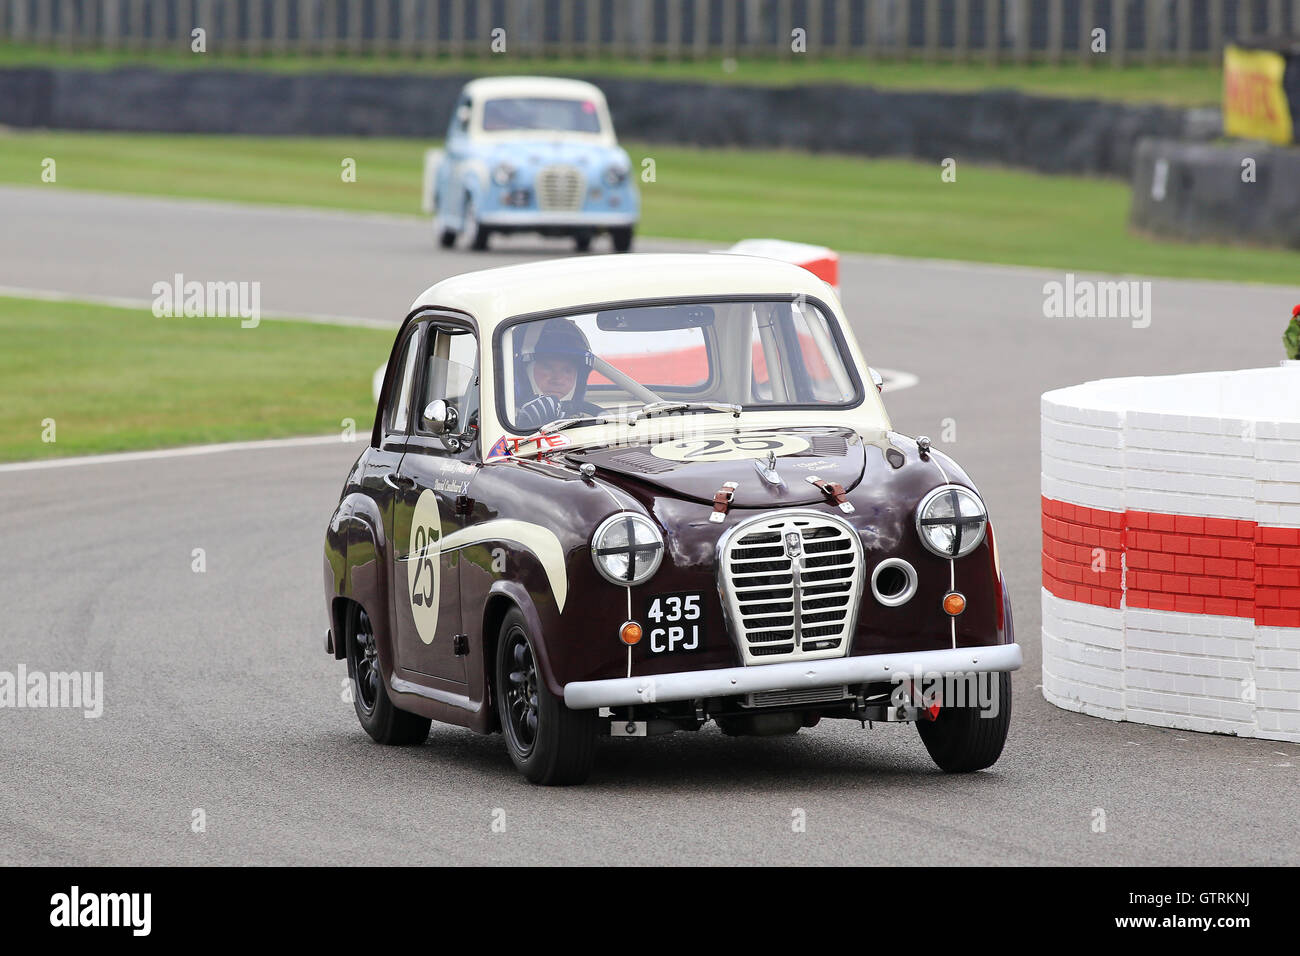 Chichester, UK. 09. Sep, 2016.  David Coulthard in Austin A35 - St Mary's Trophy.  Das Goodwood Revival ist Stockbild